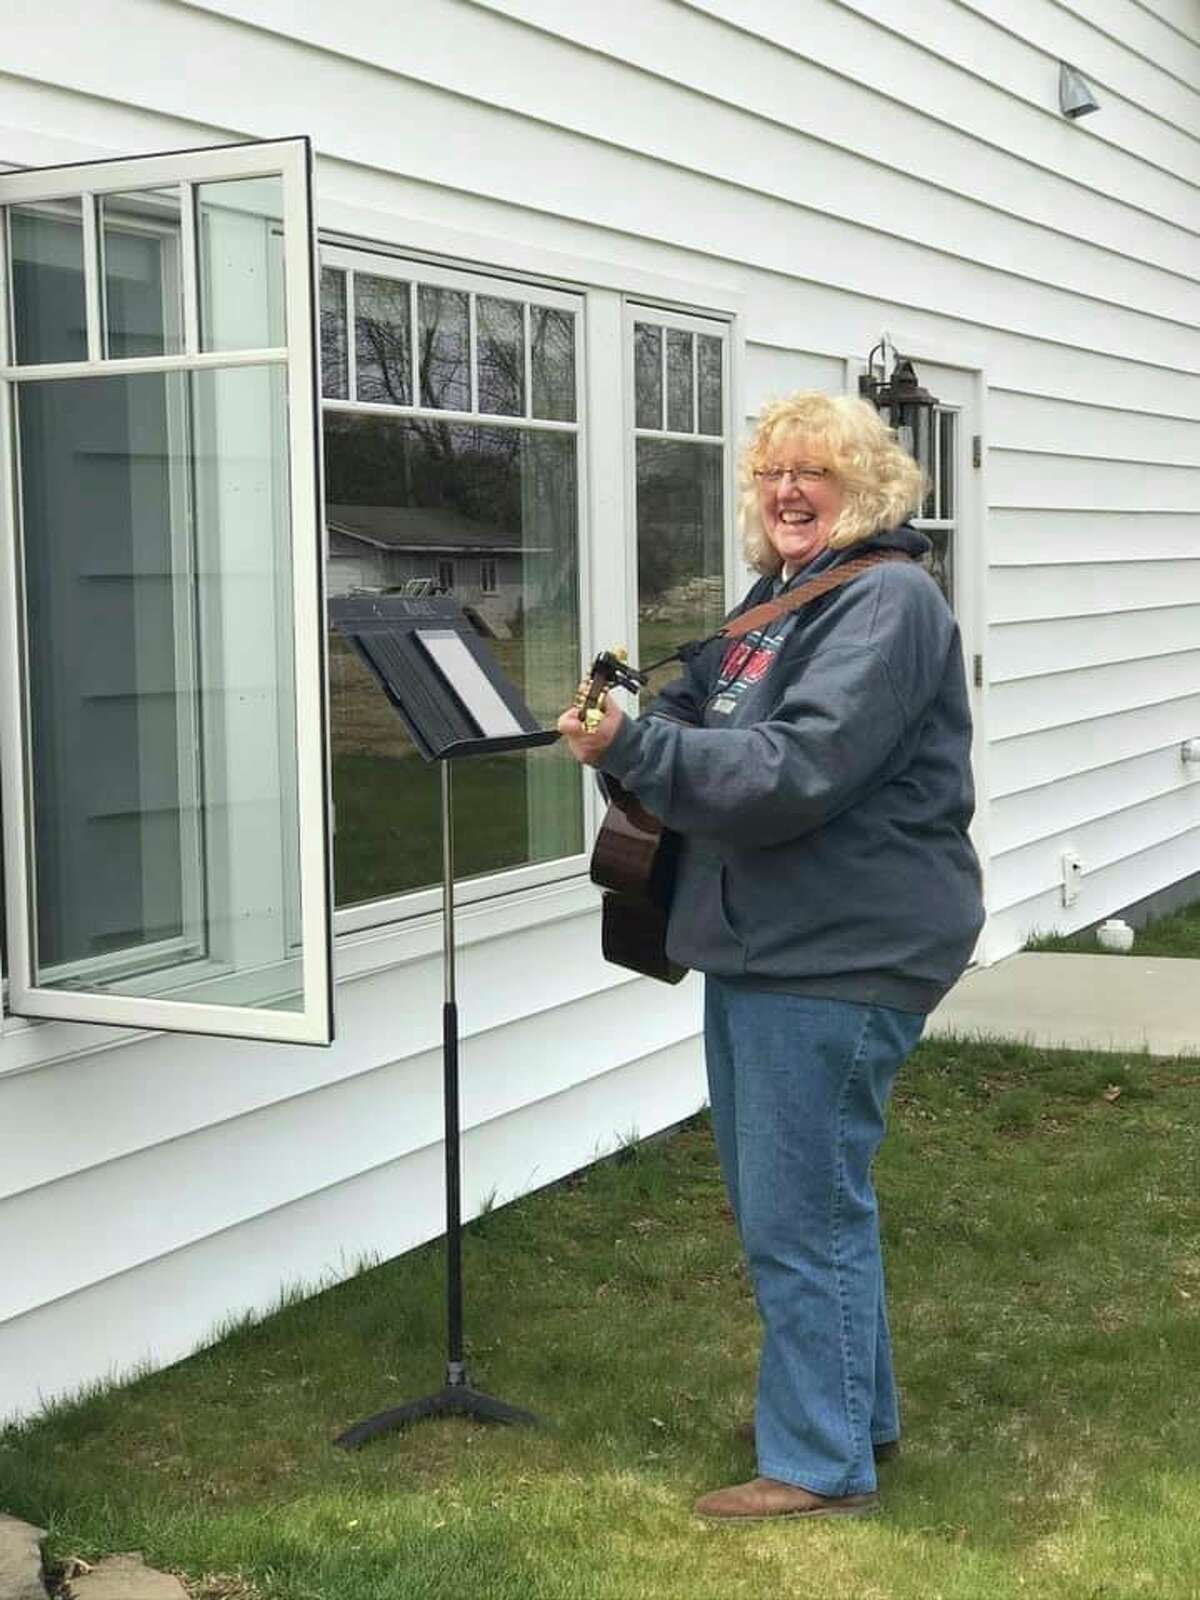 Due to coronavirus precautions, Kris Kuziel of Port Austin sings outside of Questover Assisted Livingwhereresidents can listen through open windows or from the patio when the weather is nice. (Questover/Courtesy Photo)